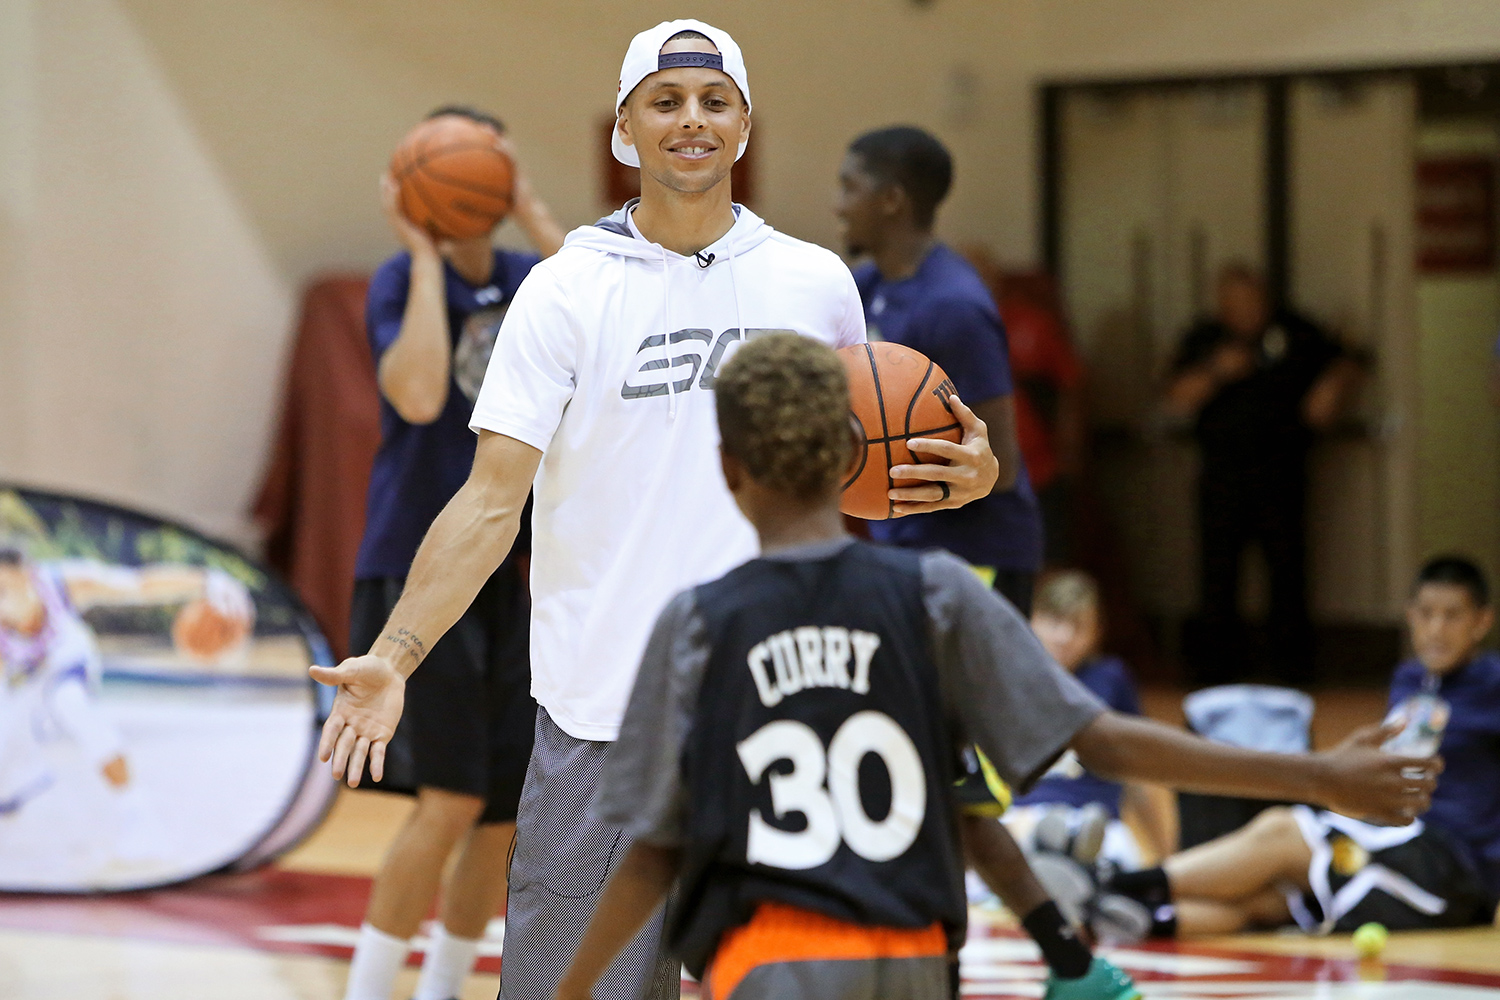 a71f176c2b71 Watch Steph Curry Destroy a Kid in One-on-One Basketball Game ...